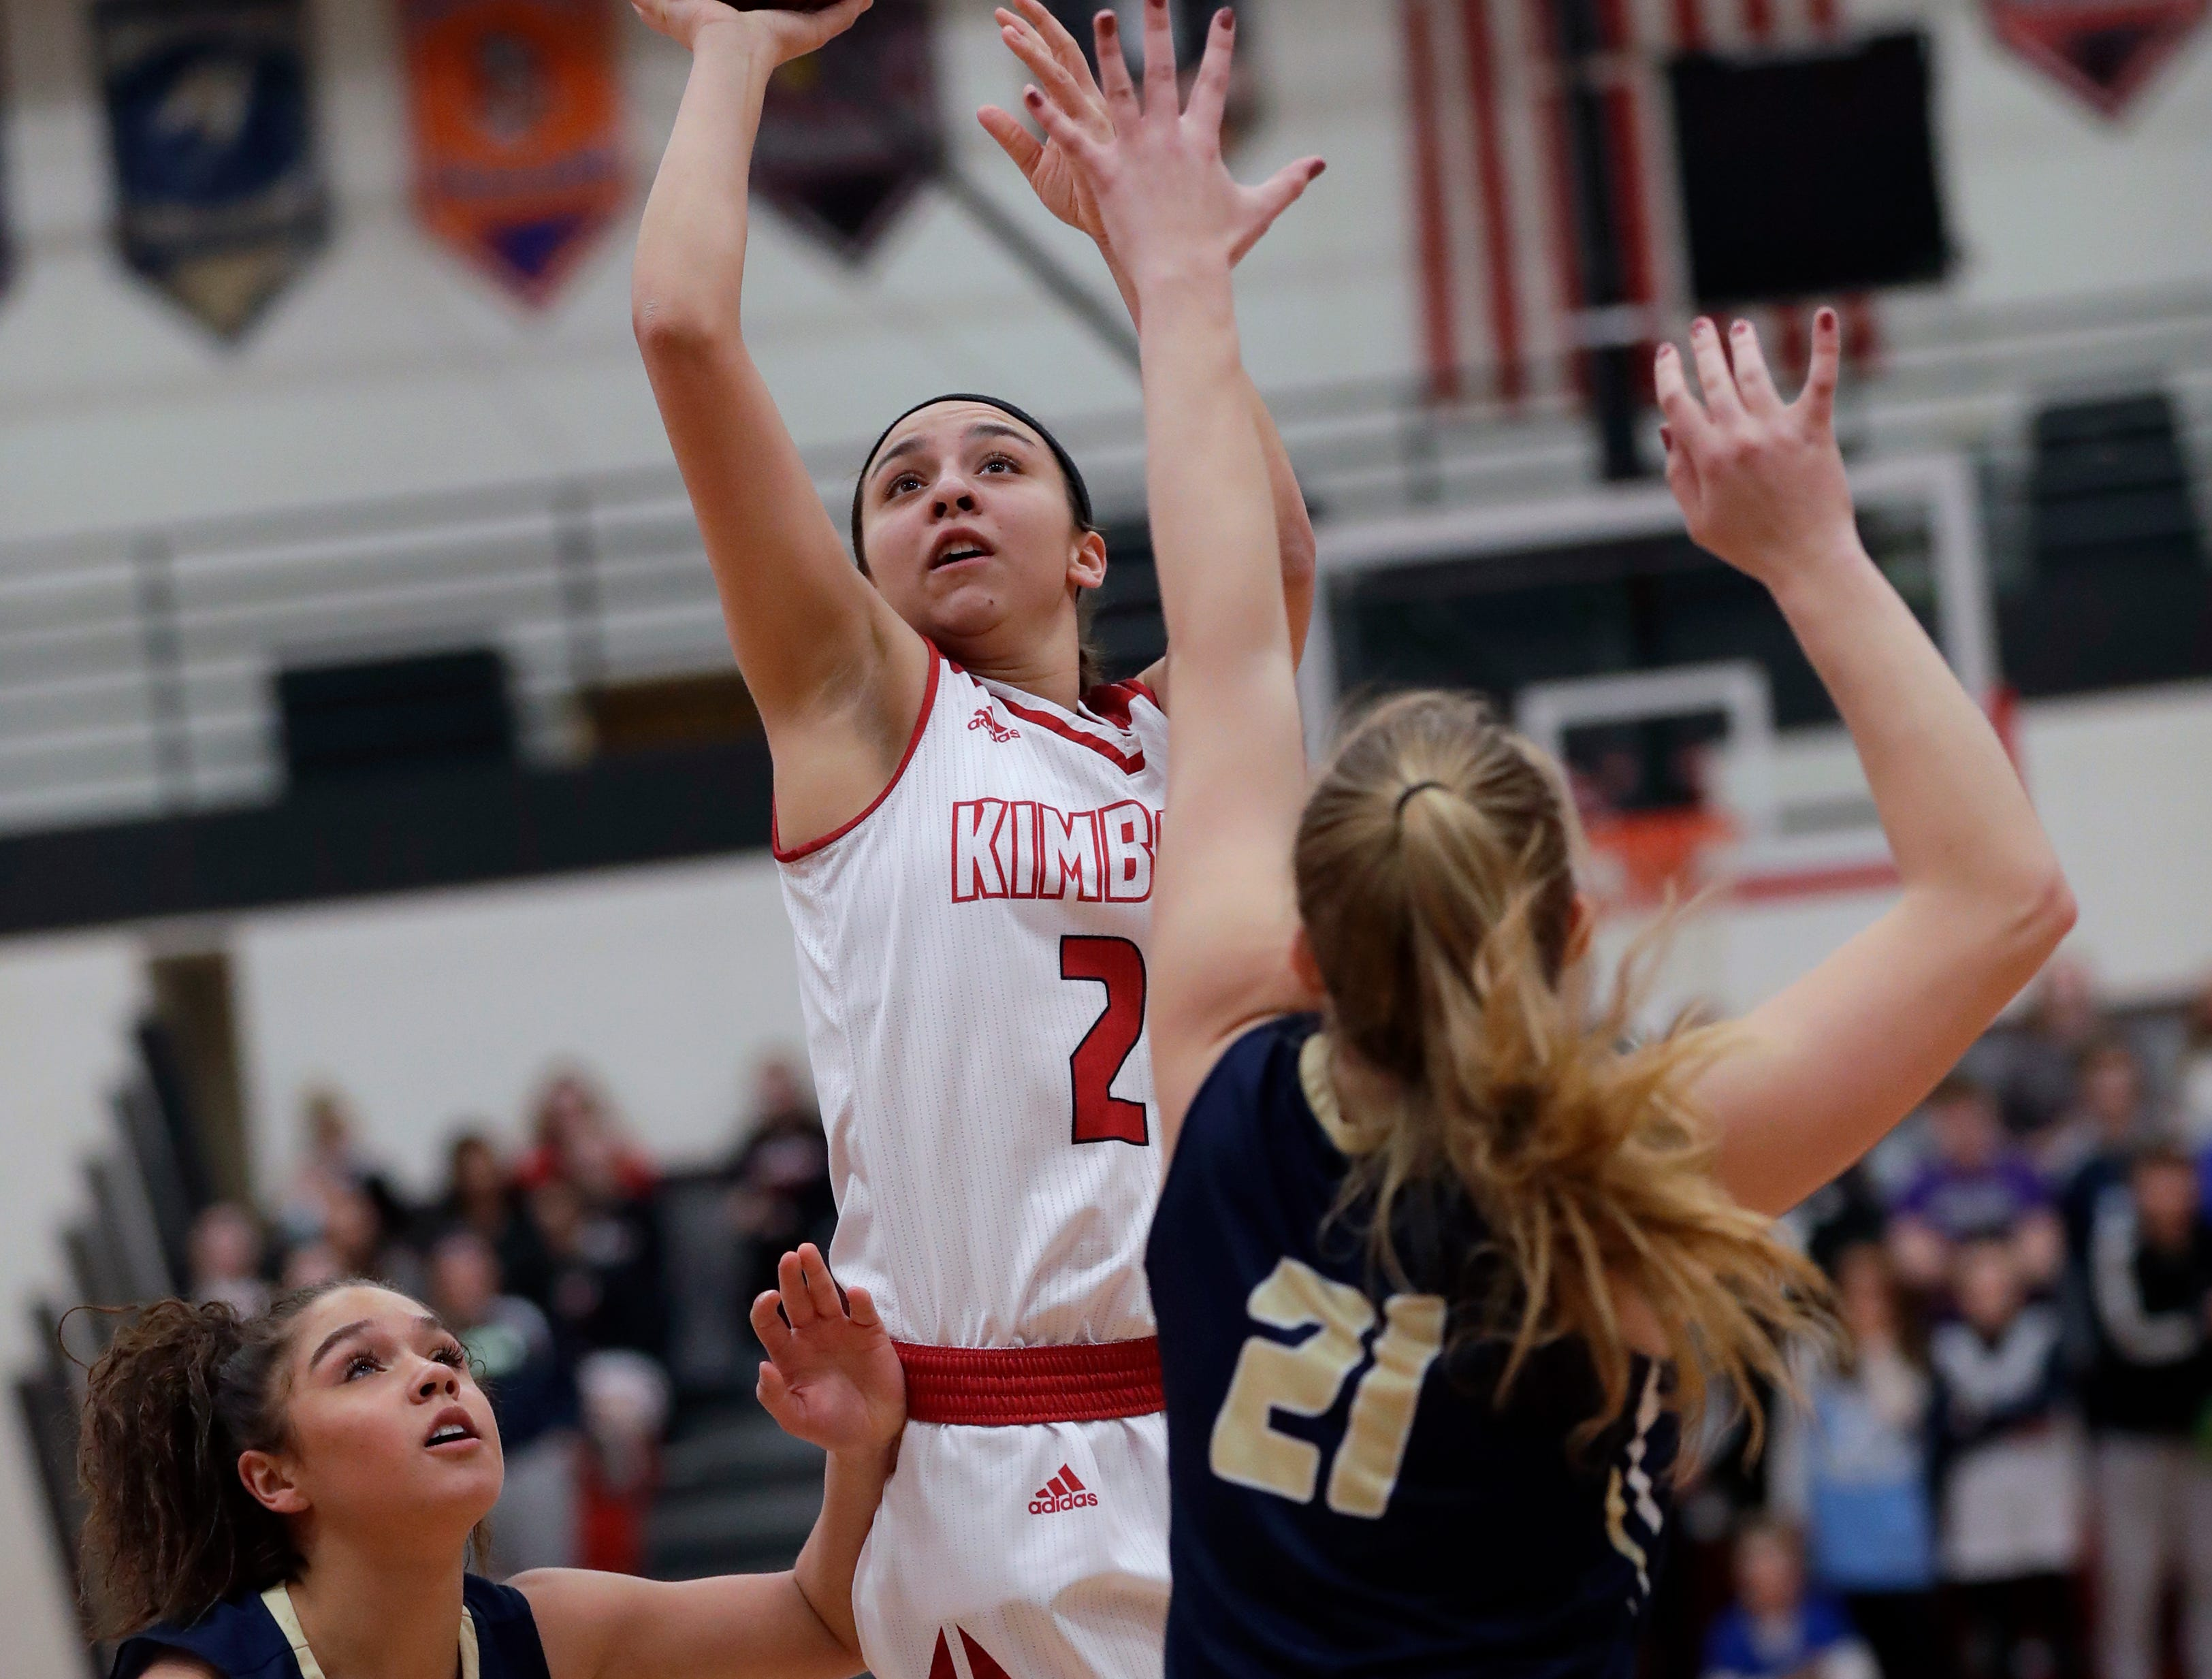 Kimberly High School's Shea Dechant (24) puts up a shot against Appleton North High School's Niki Van Wyk (5) and Lilli Van Handel (21) during their girls basketball game Monday, February 11, 2019, in Kimberly, Wis. Dan Powers/USA TODAY NETWORK-Wisconsin